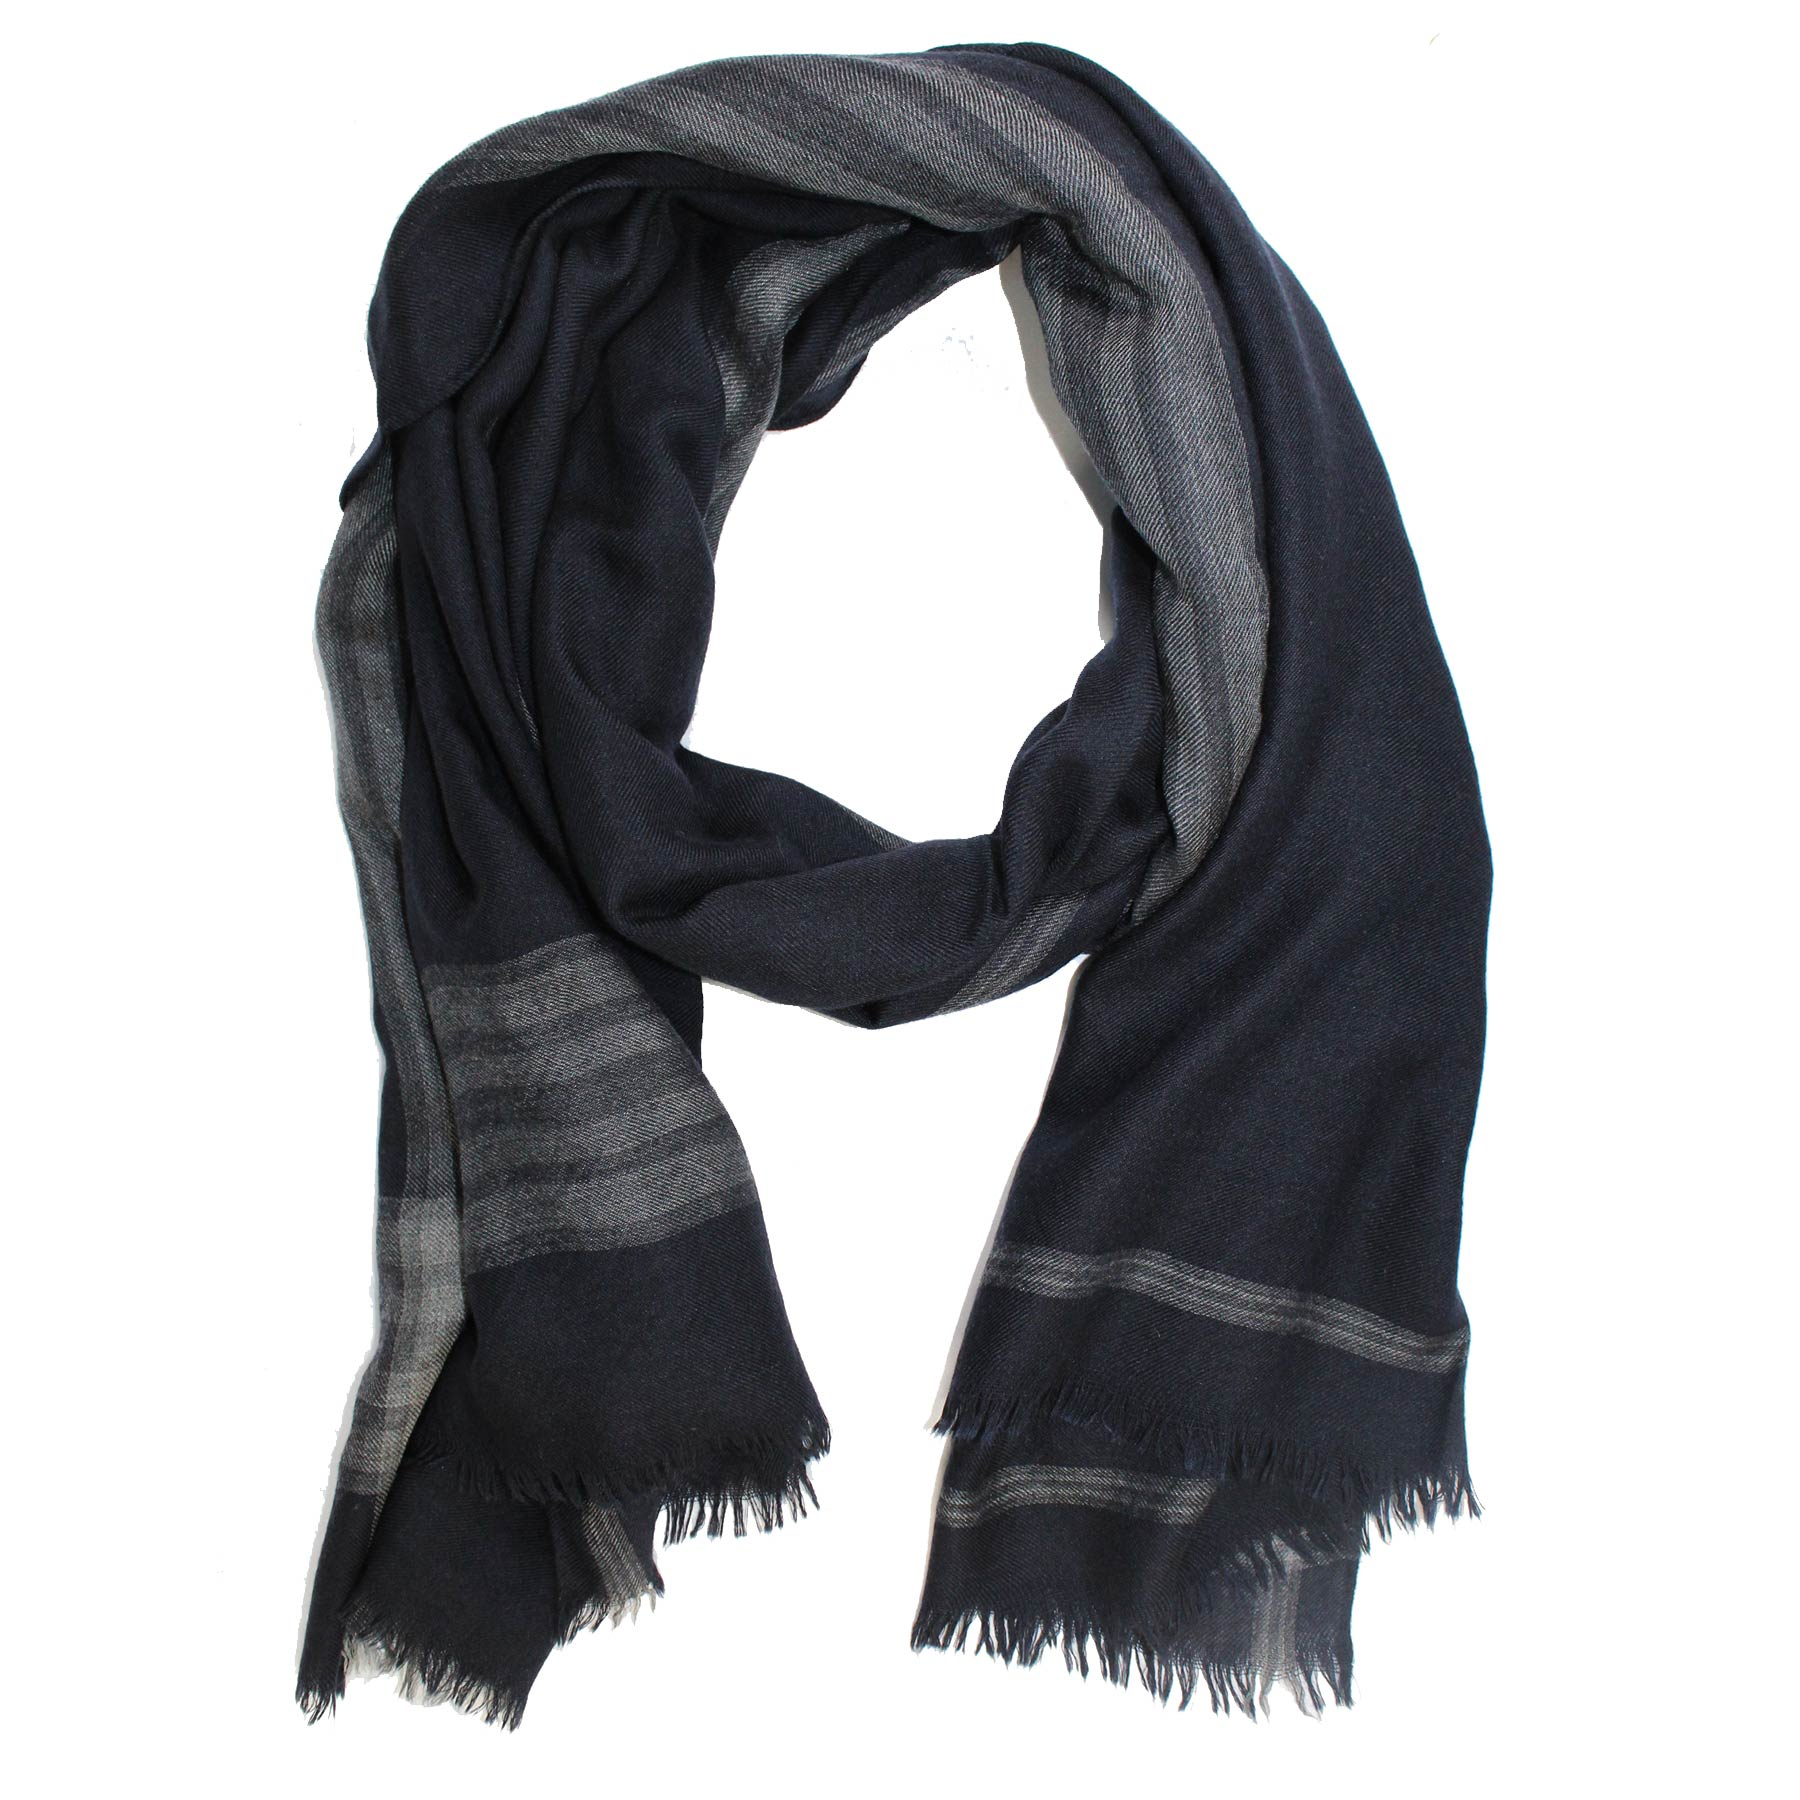 Agnona Cashmere Silk Scarf Gray Black Stripe Shawl